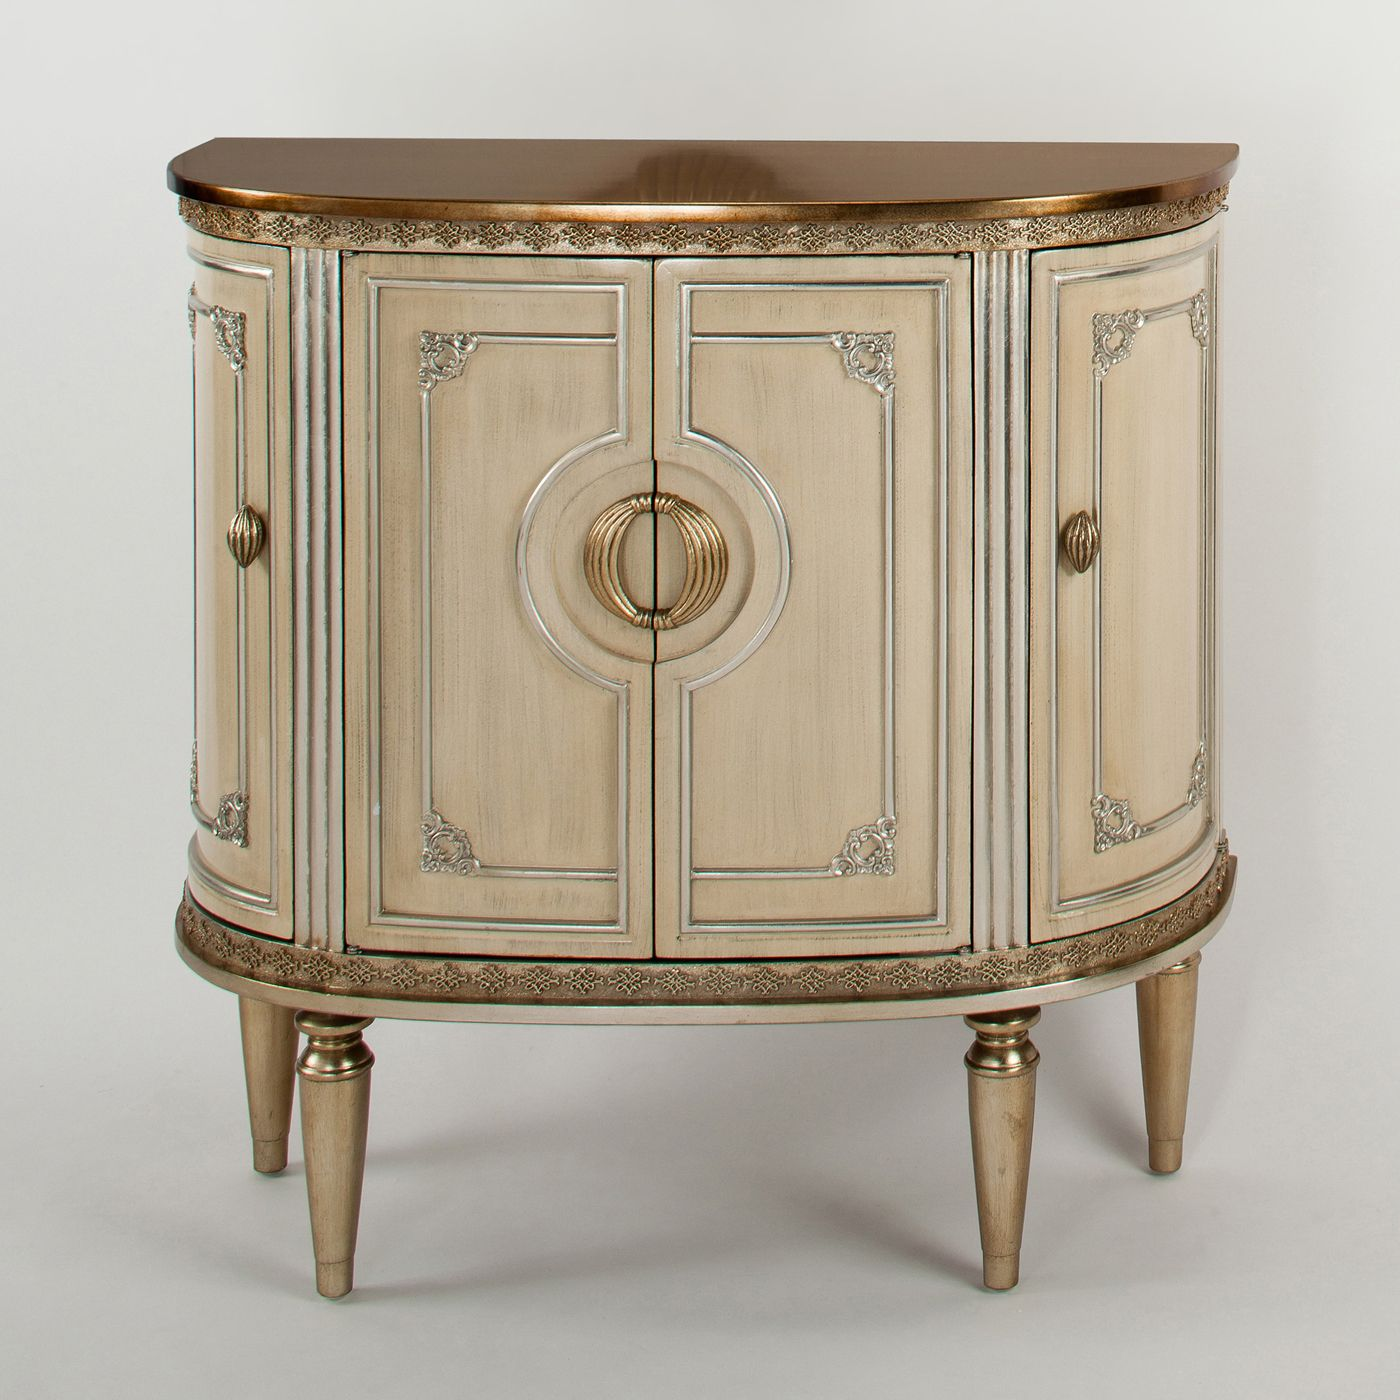 Entry Hall Cabinet artmax n8811-s entry cabinet: rochester, ny rep: creative